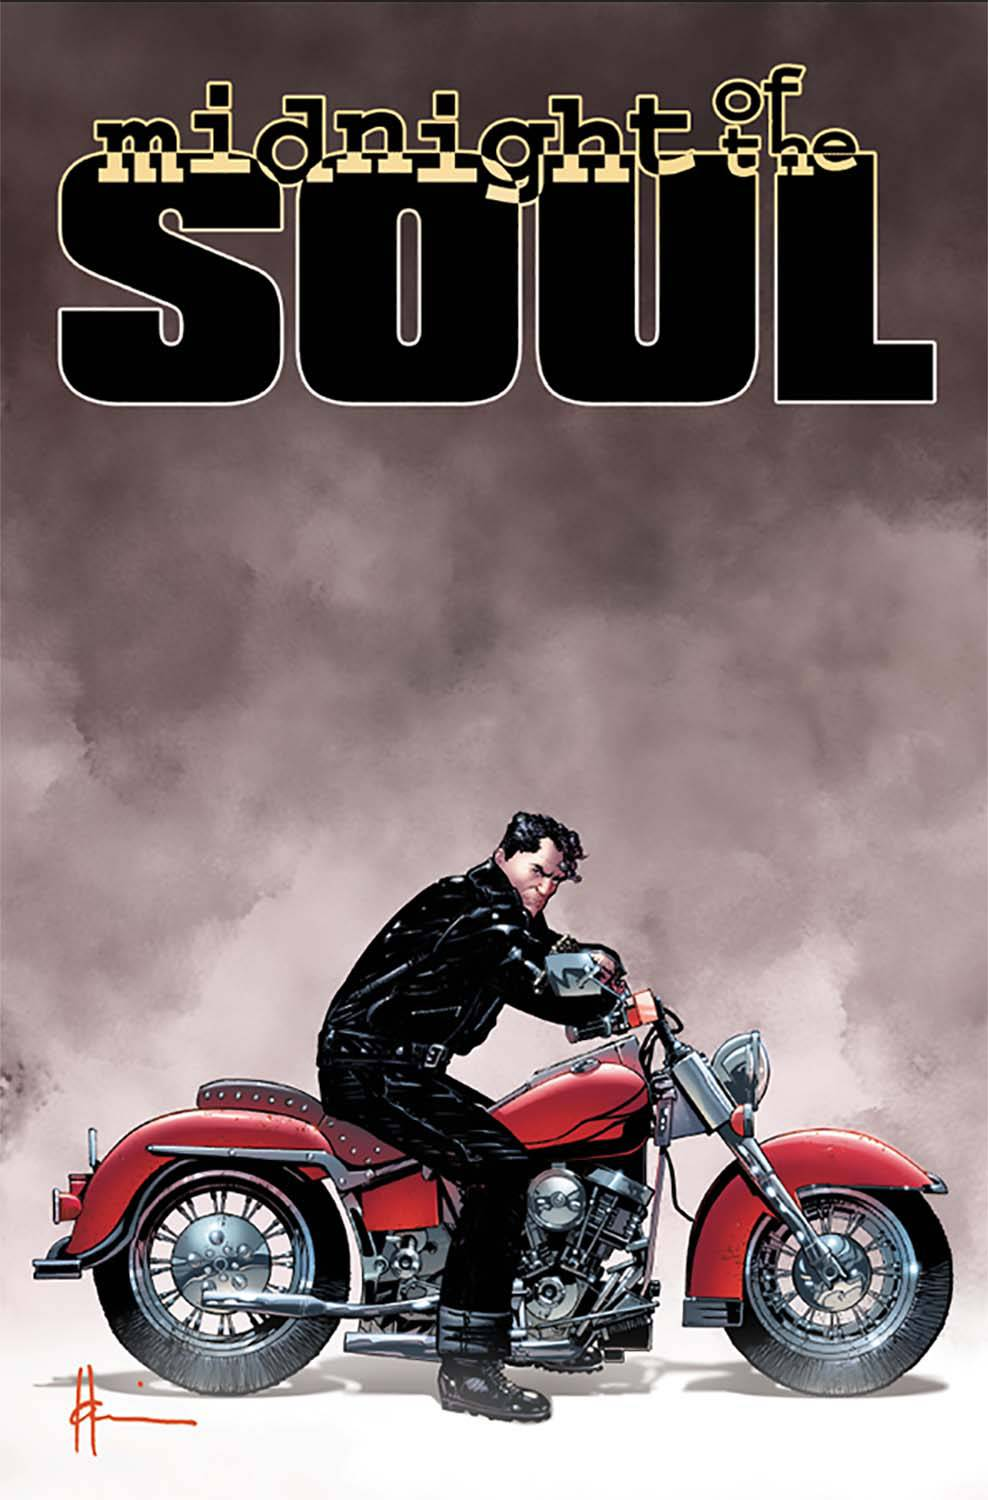 MIDNIGHT OF THE SOUL TP VOL 01 (OCT160661) (MR)